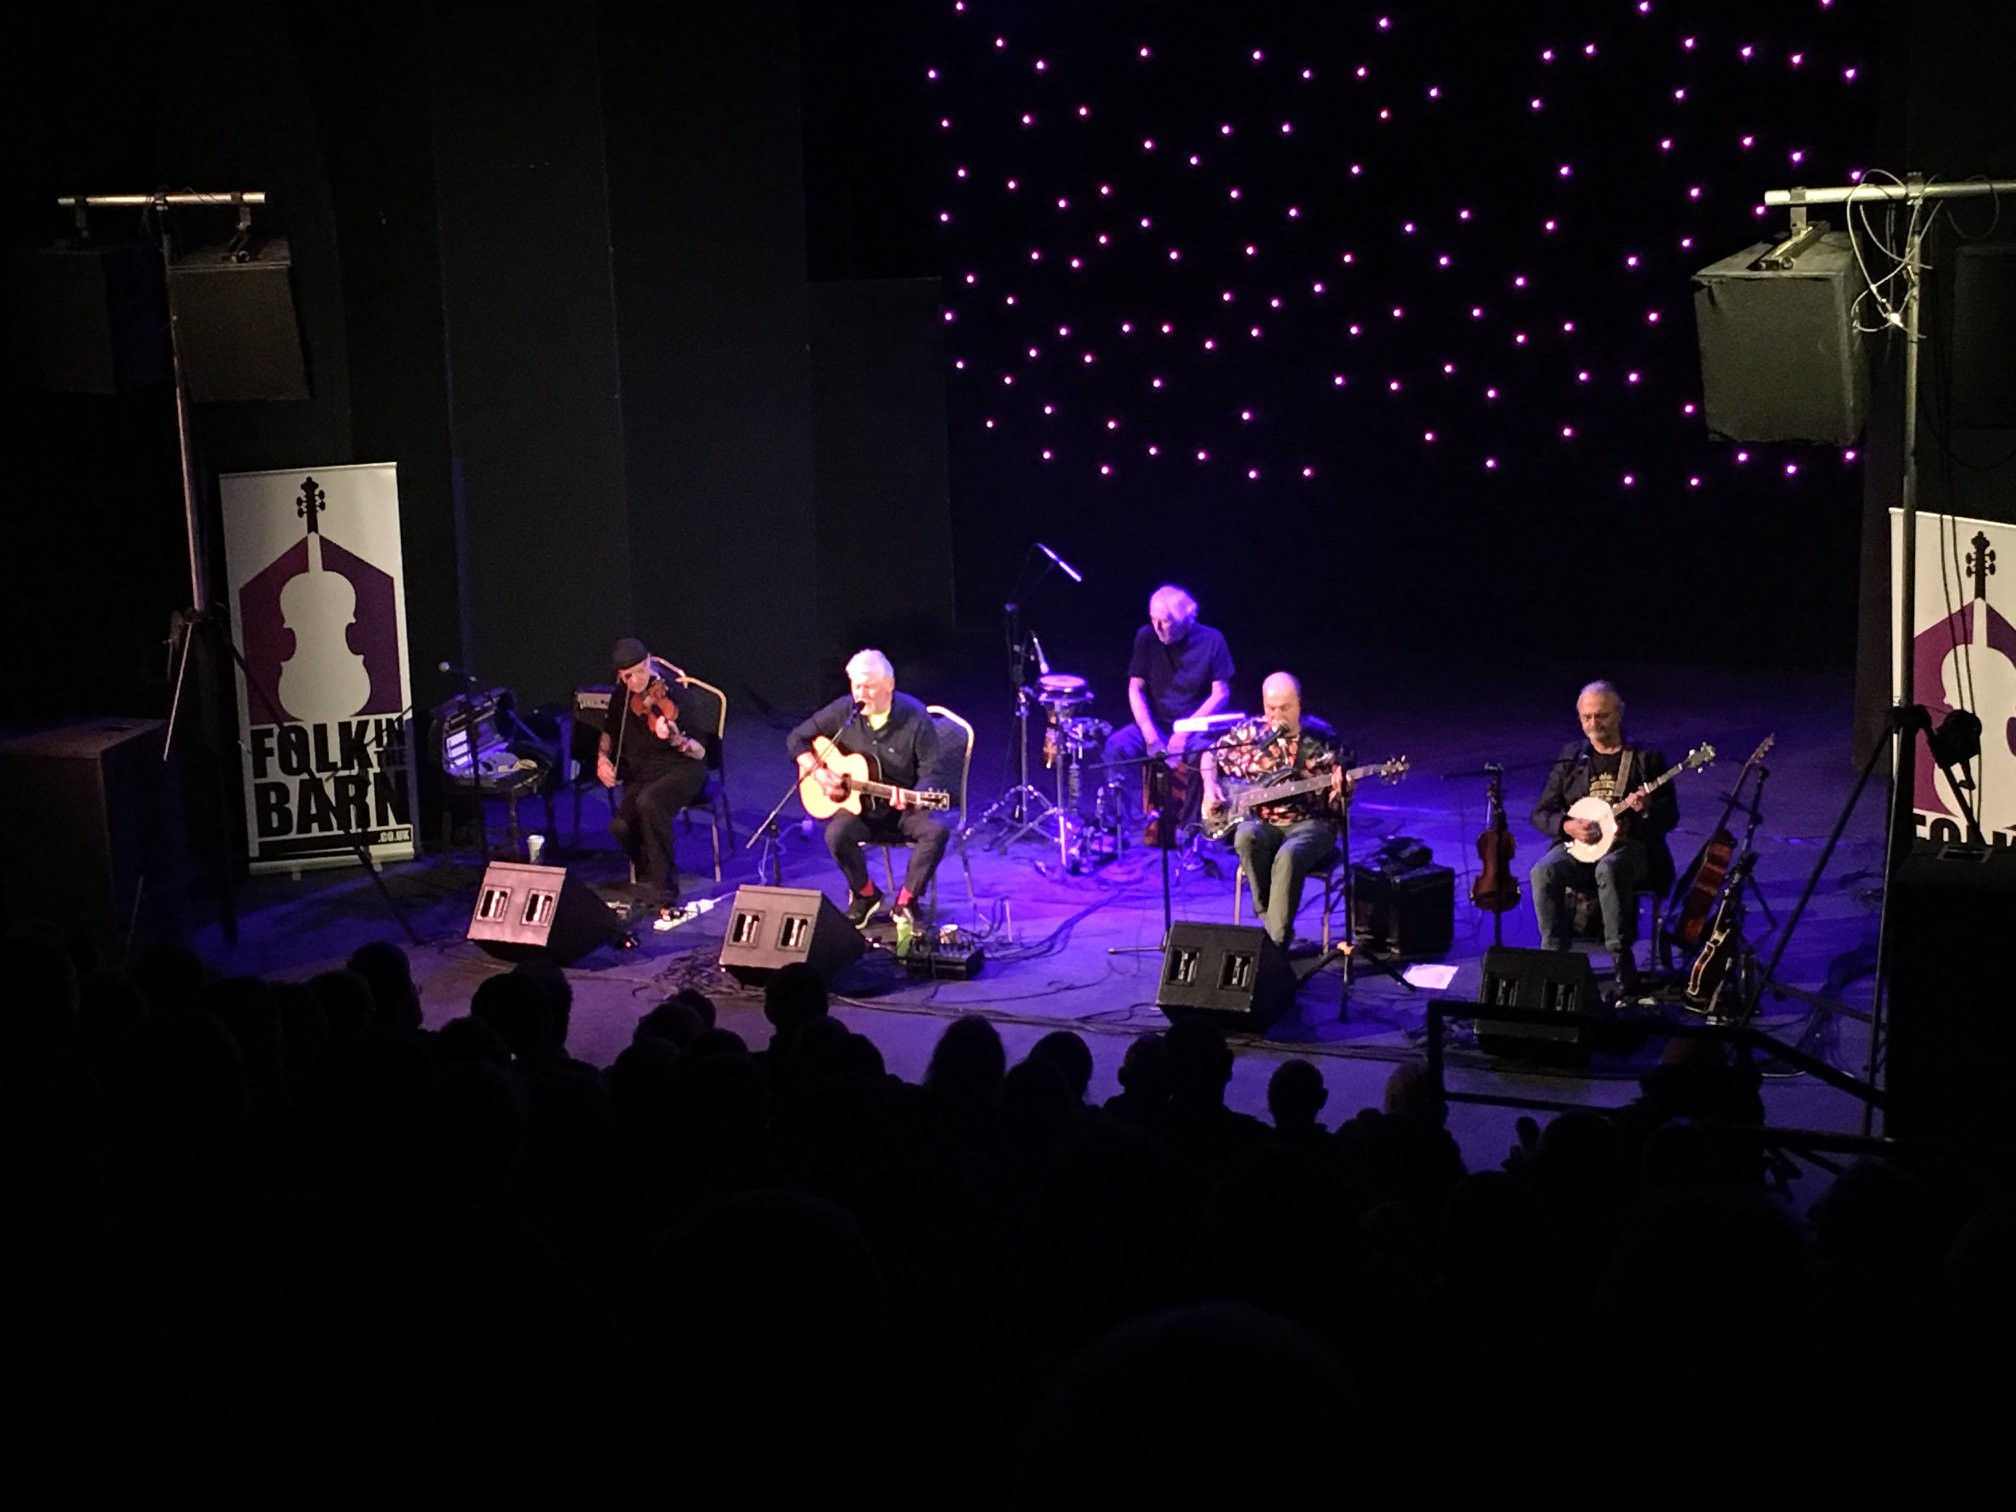 Fairport Convention at the Tower Theatre